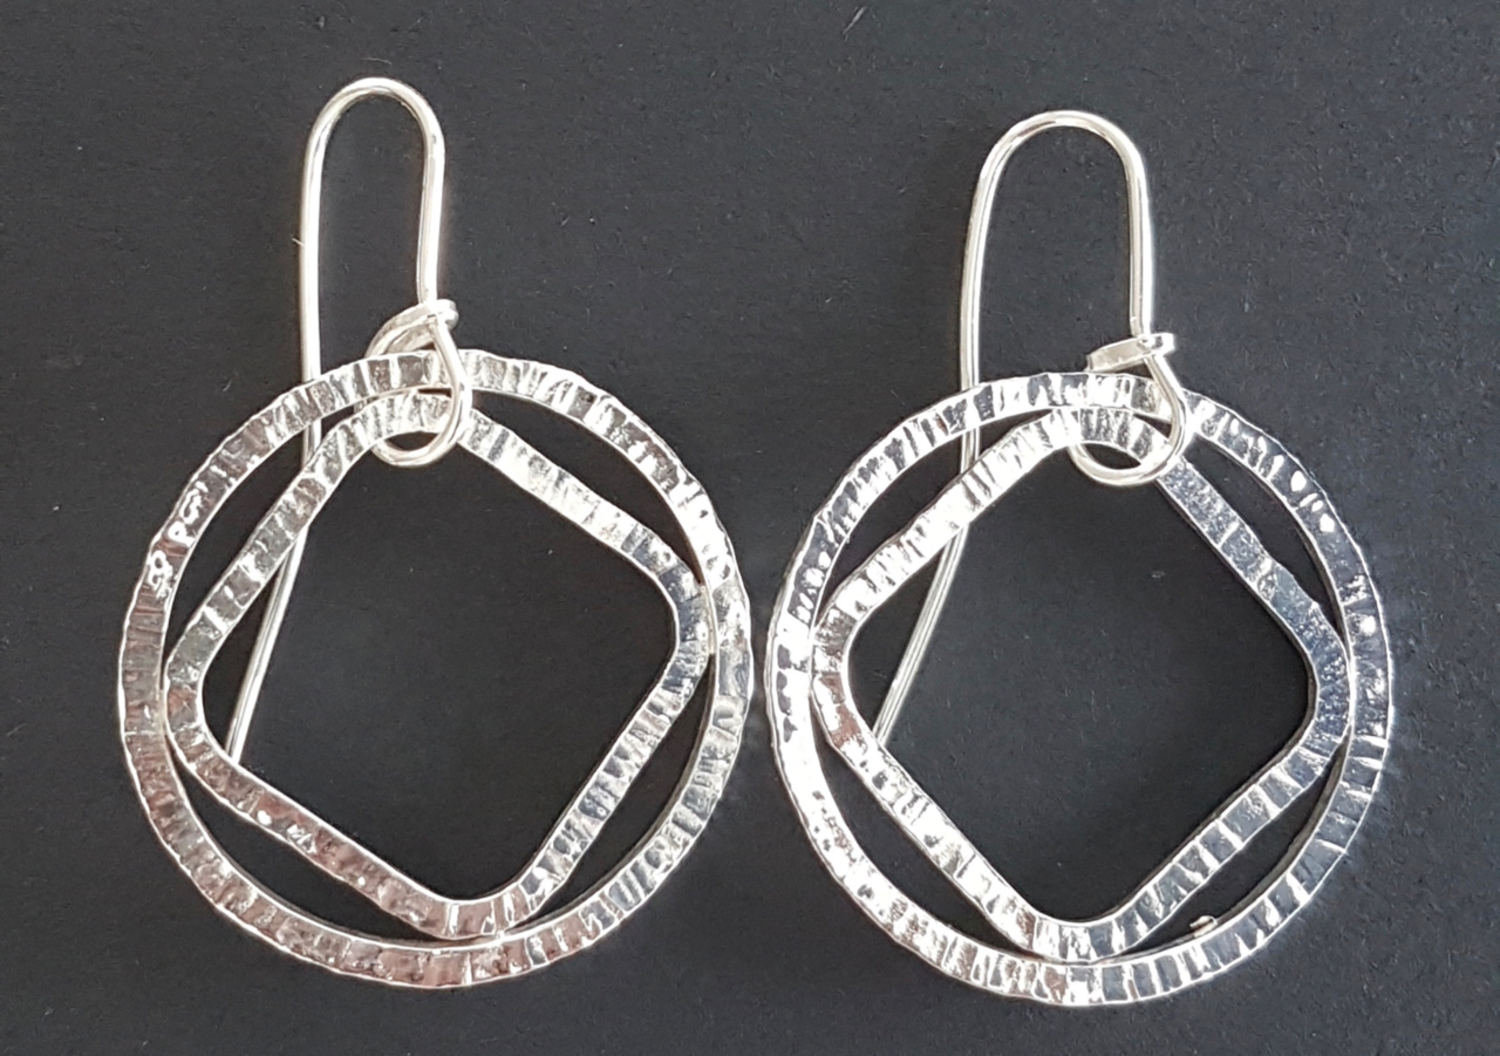 Forged Loop and Diamond earrings (L)